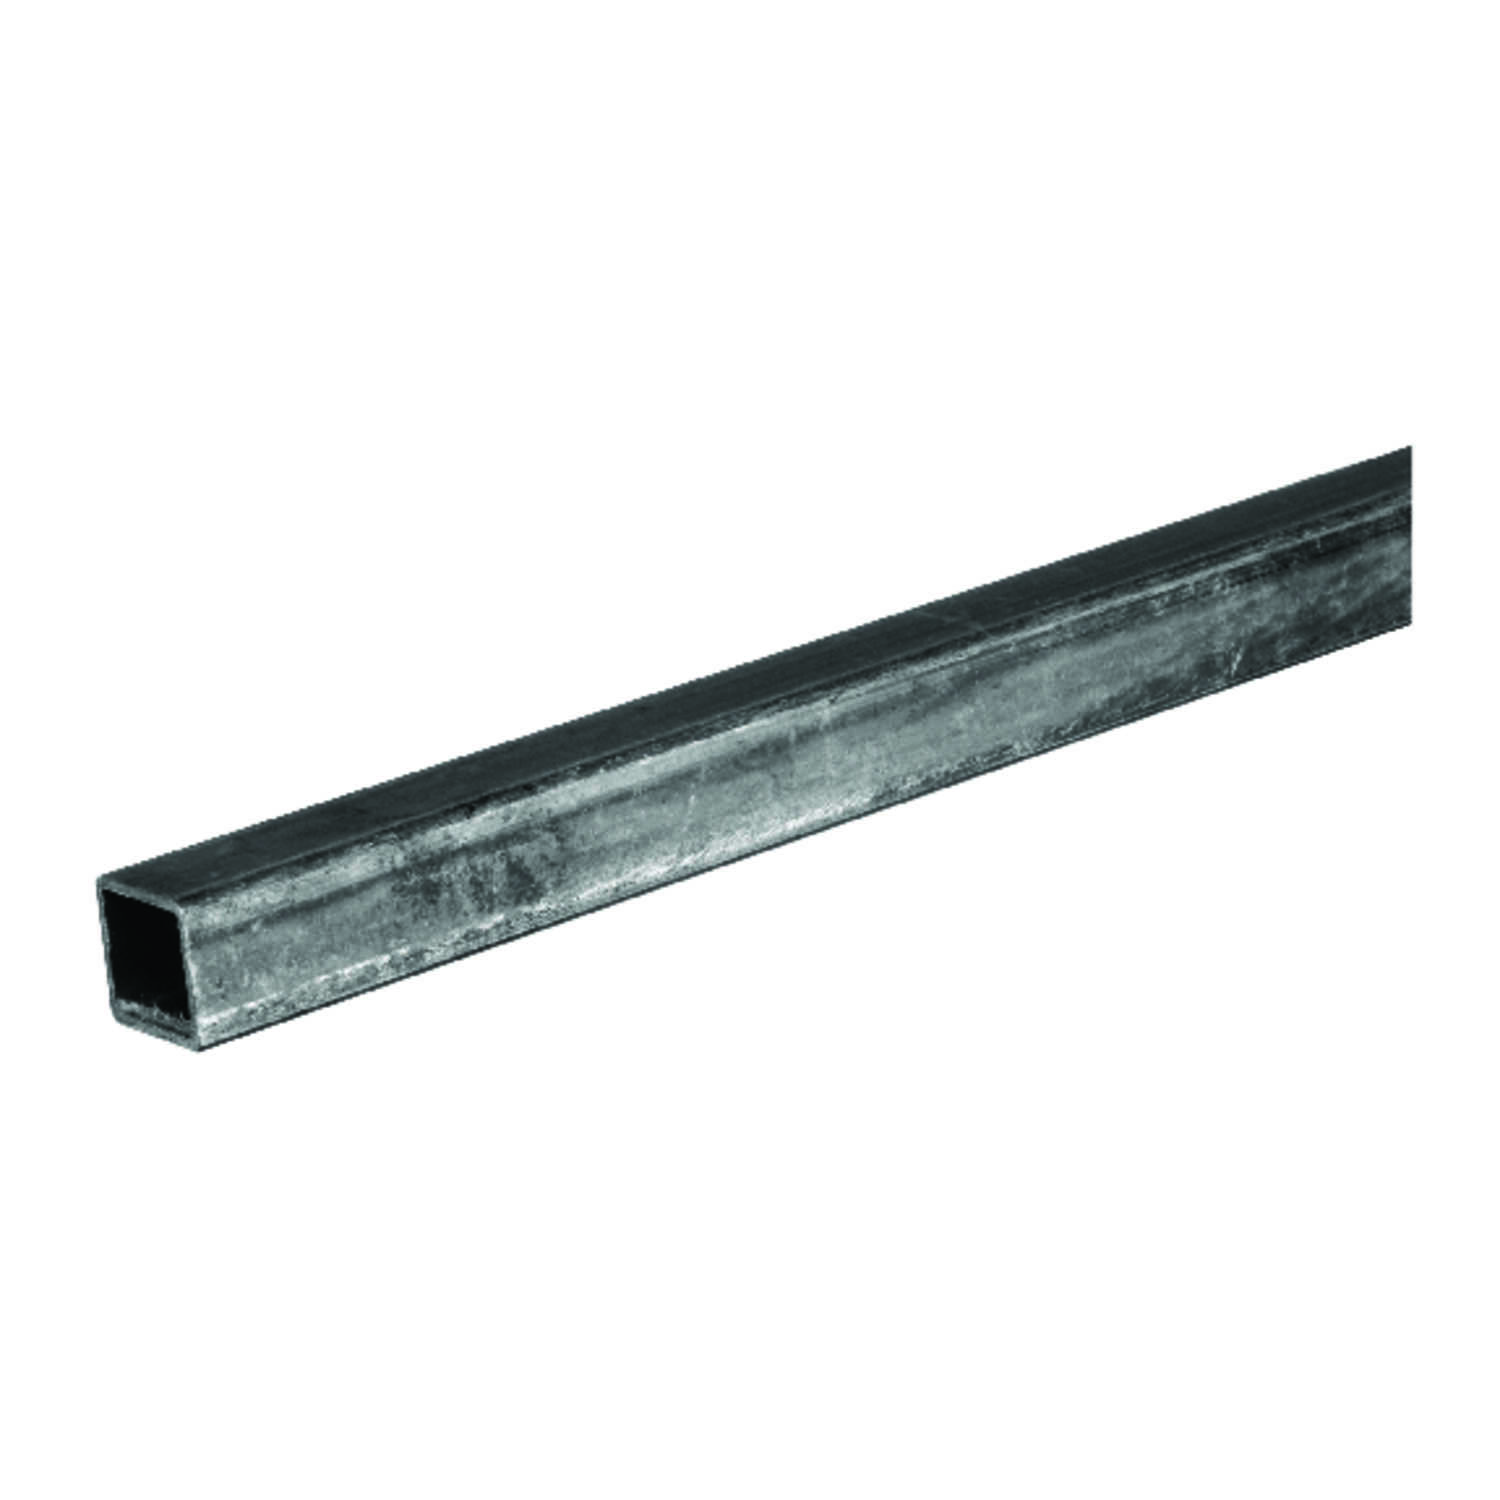 Boltmaster  3/4 in. Dia. x 72 in. L Hot Rolled Steel  Weldable Unthreaded Rod